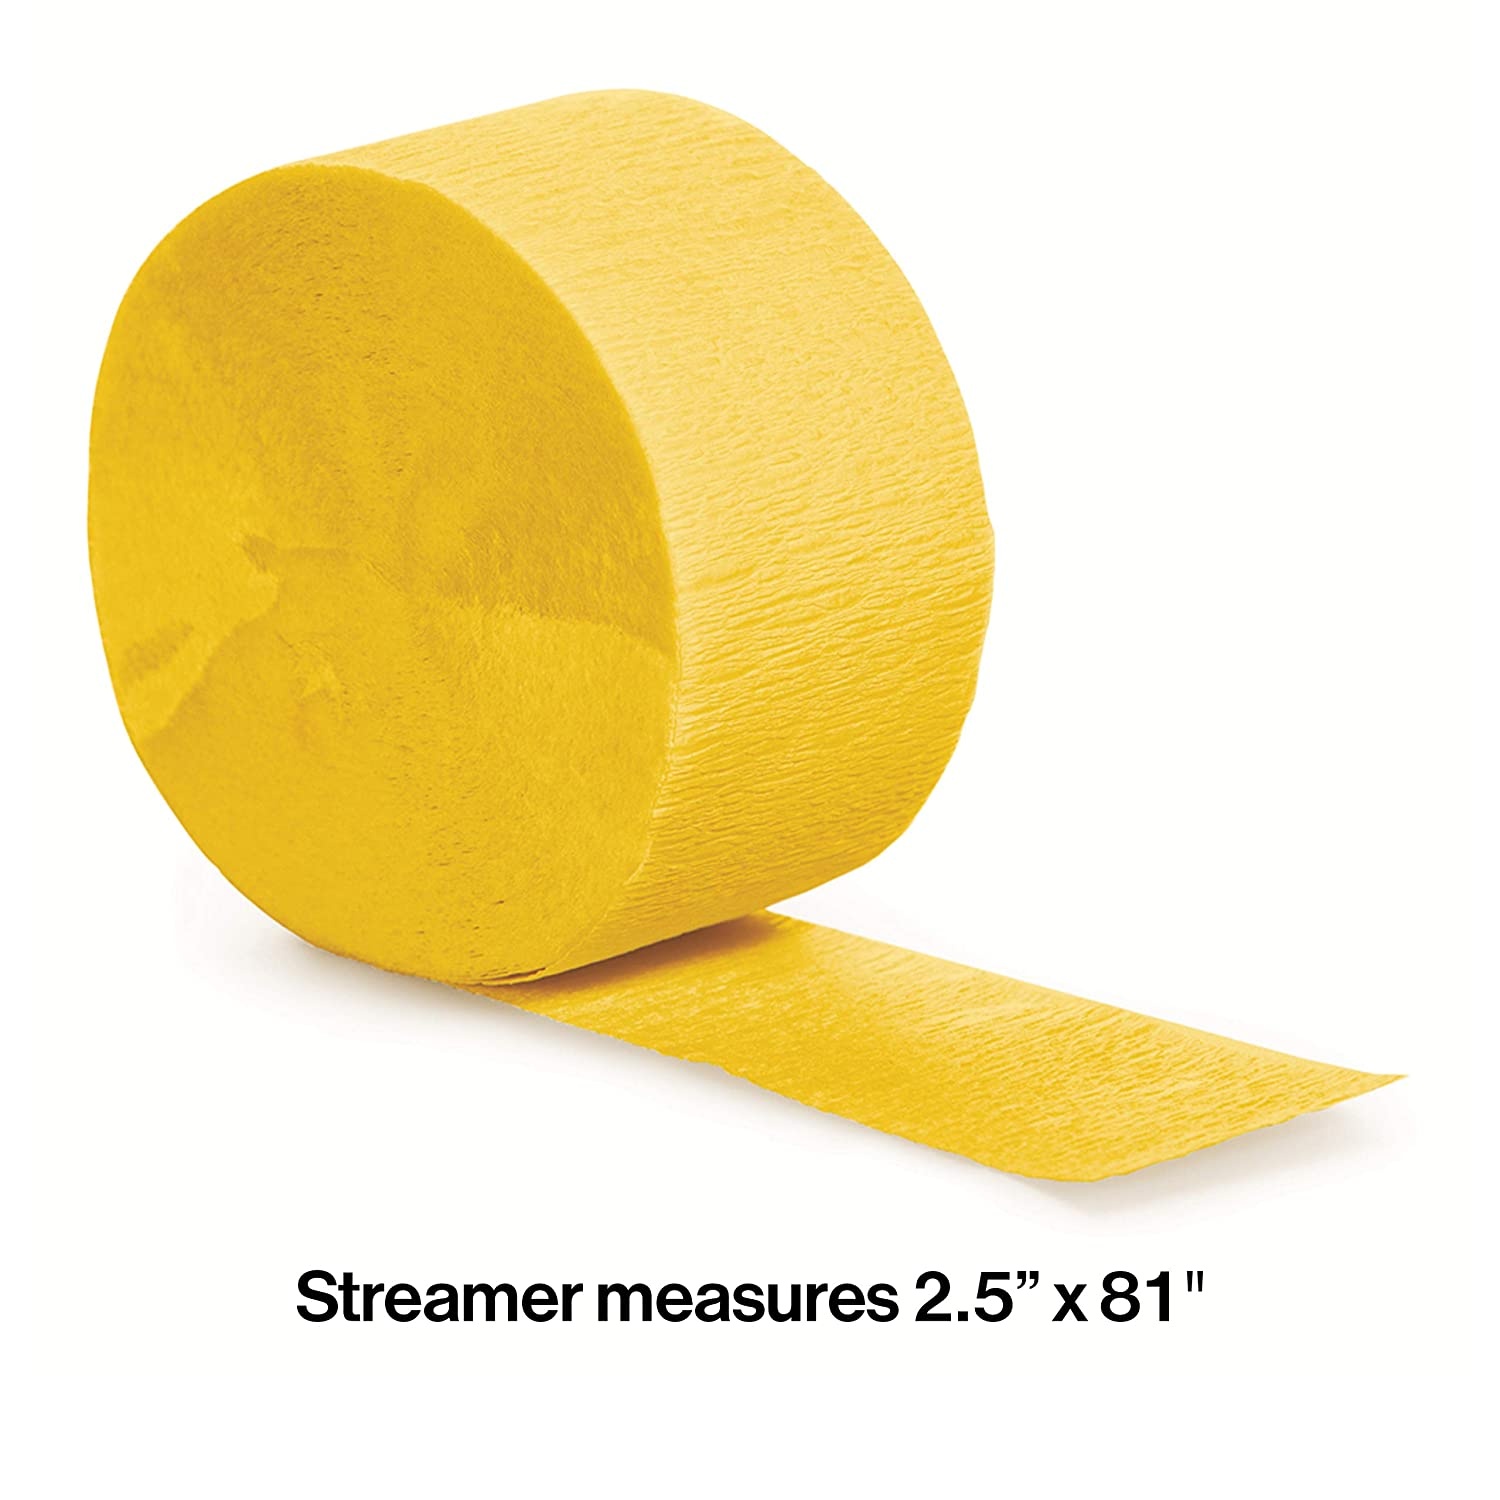 078520 School Bus Yellow Creative Converting 12-Count Touch of Color Crepe Paper Streamer Rolls